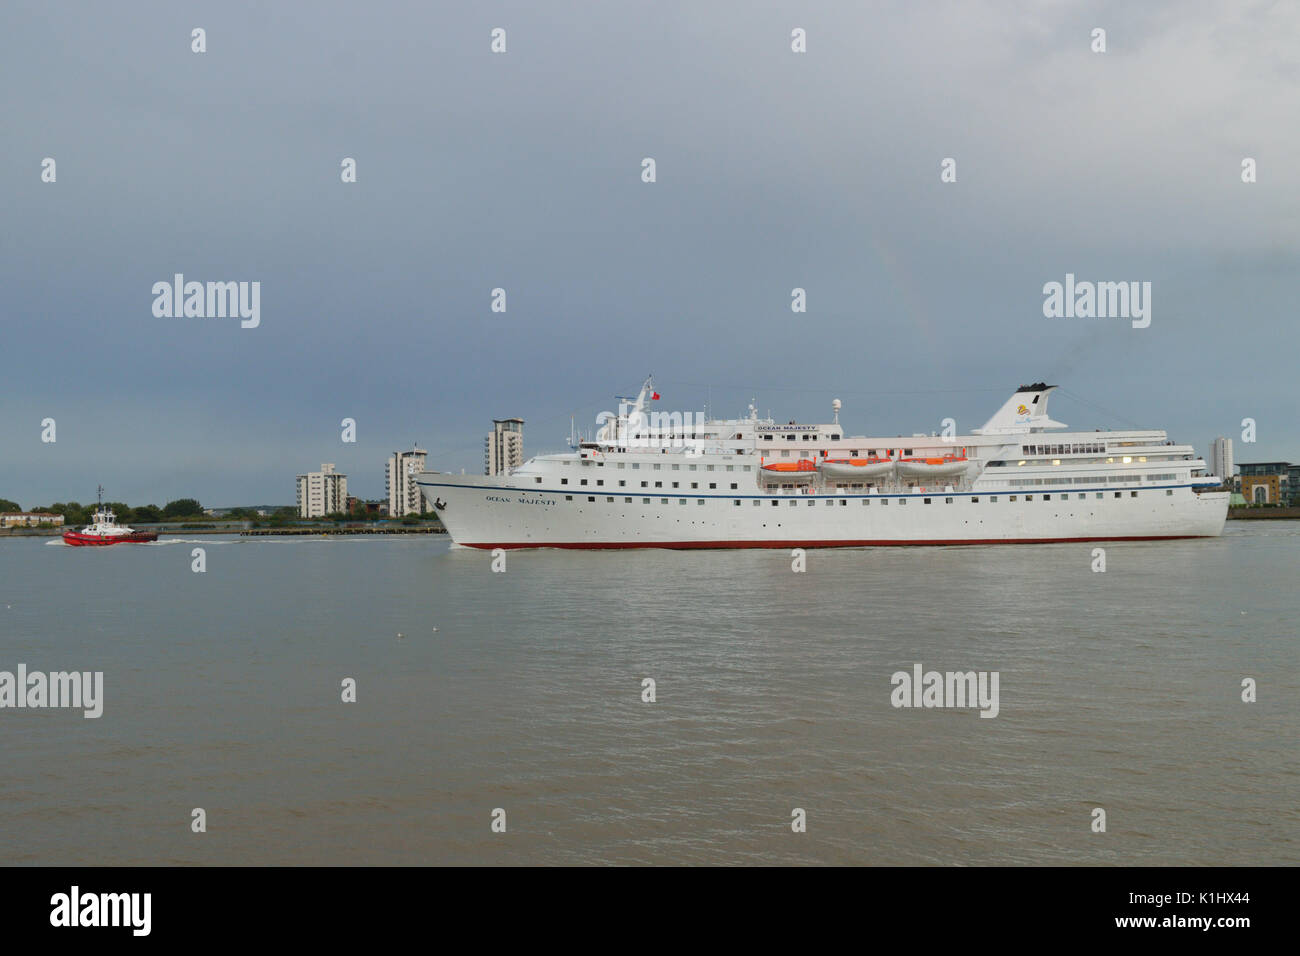 London, UK, 14th August 2017  Cruise Liner Ocean Majesty leaves the river Thames, London, after a port call Stock Photo